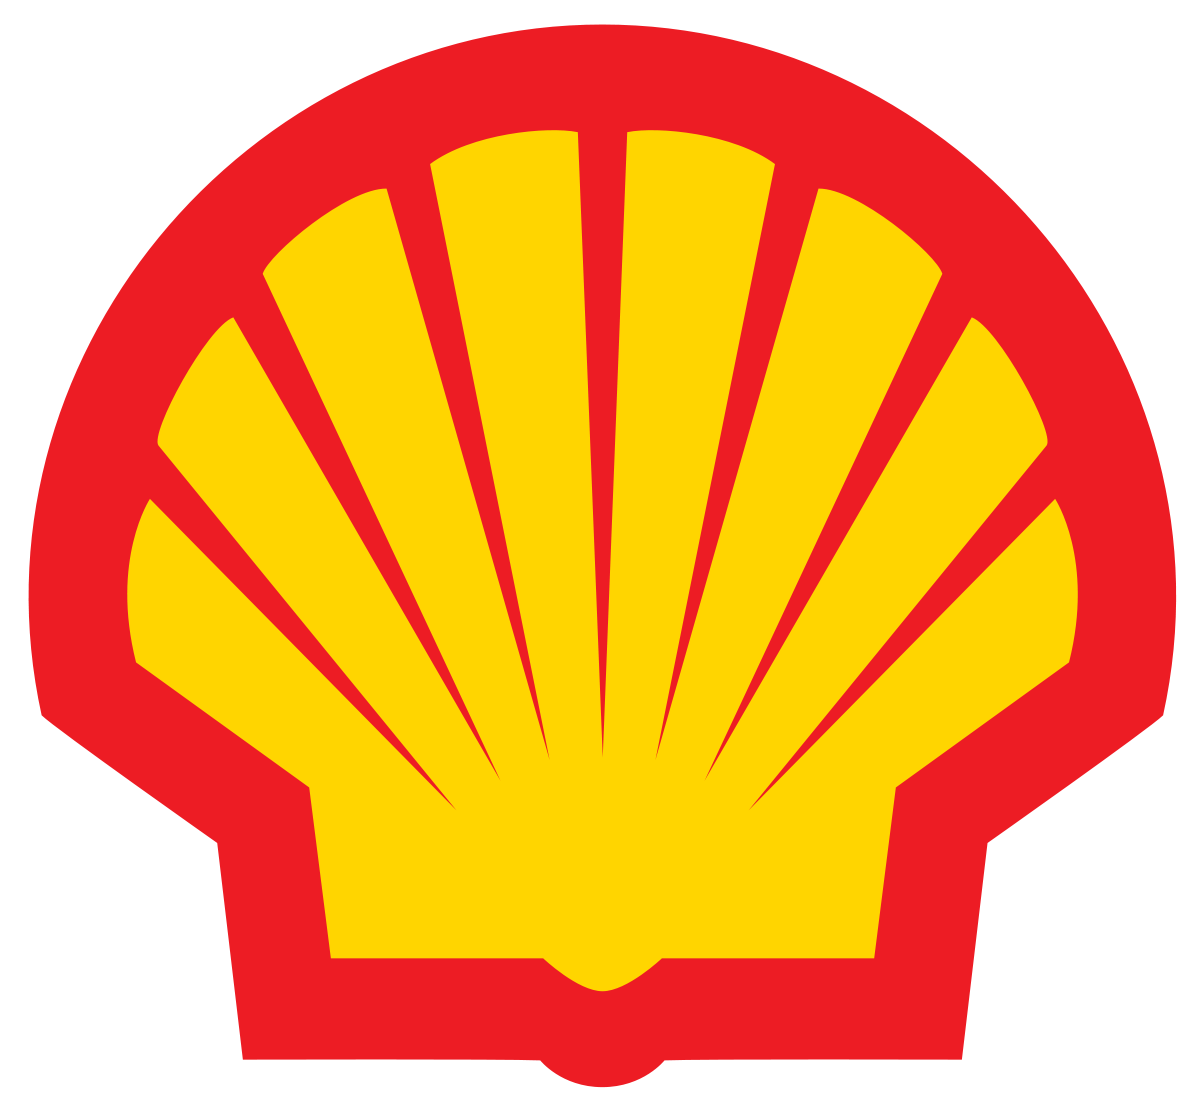 Shell Oil Company.